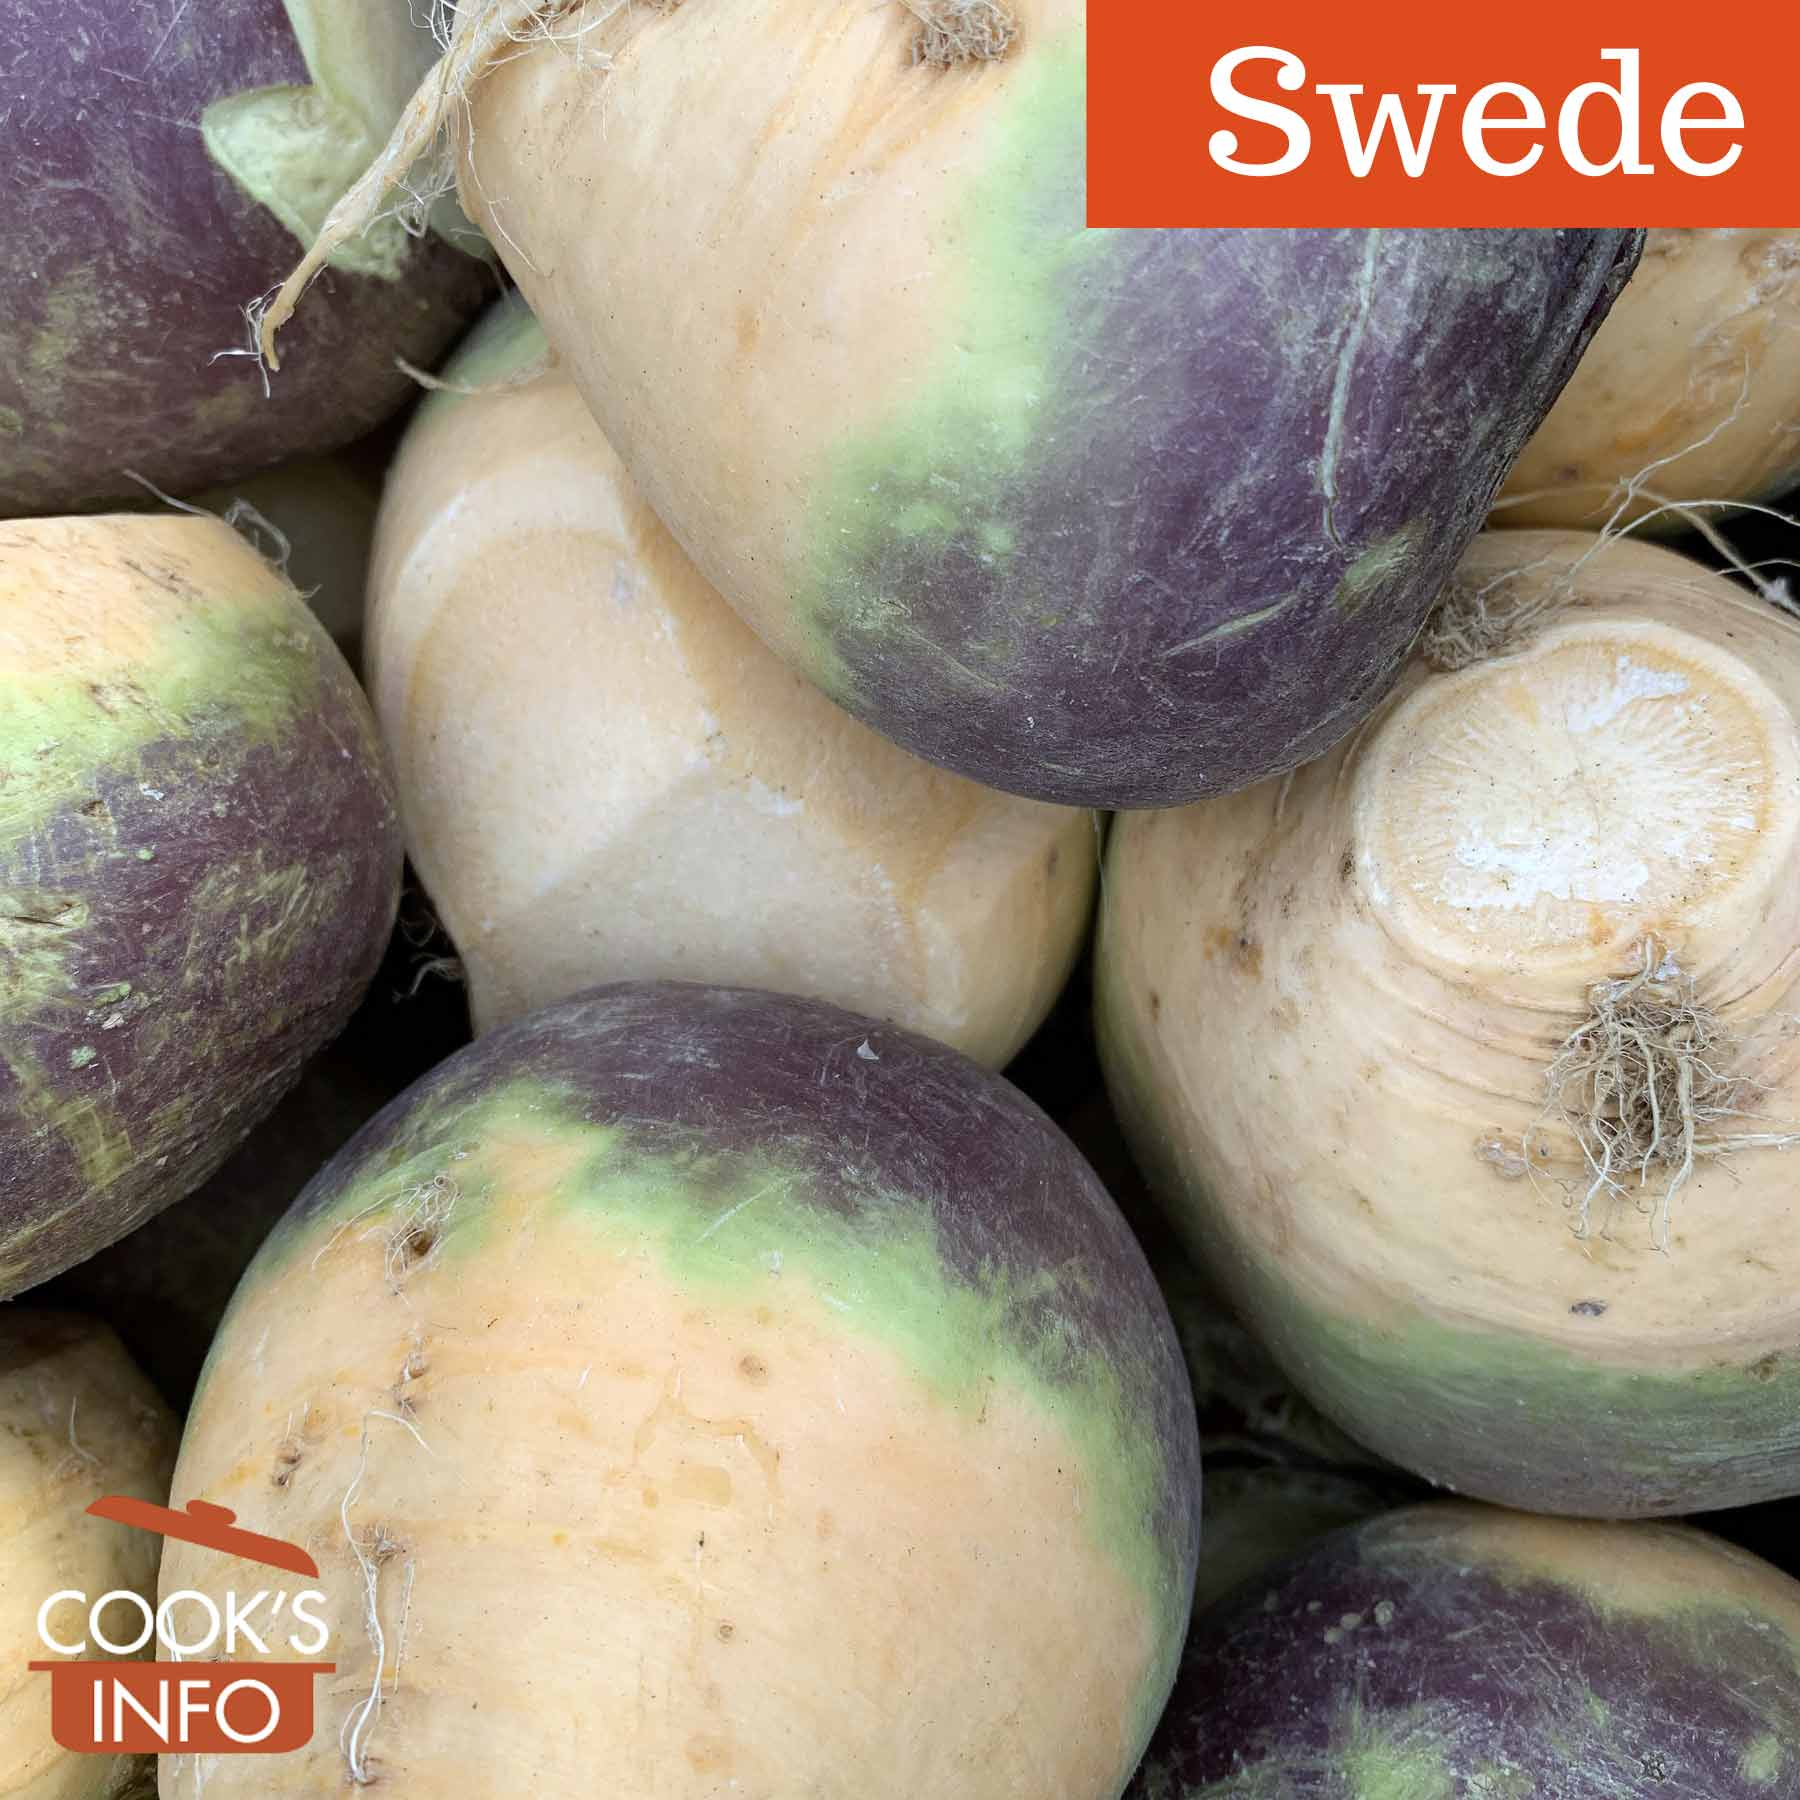 Whole swedes